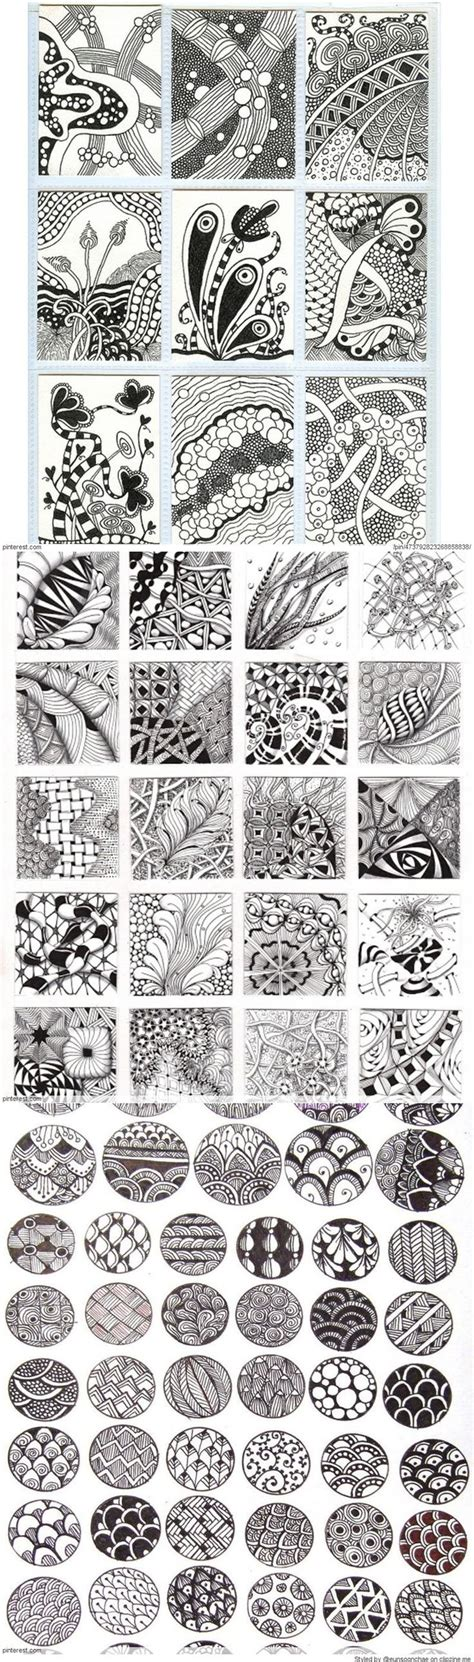 draw doodle decorate zentangle patterns ideas be careful zentangle is naff